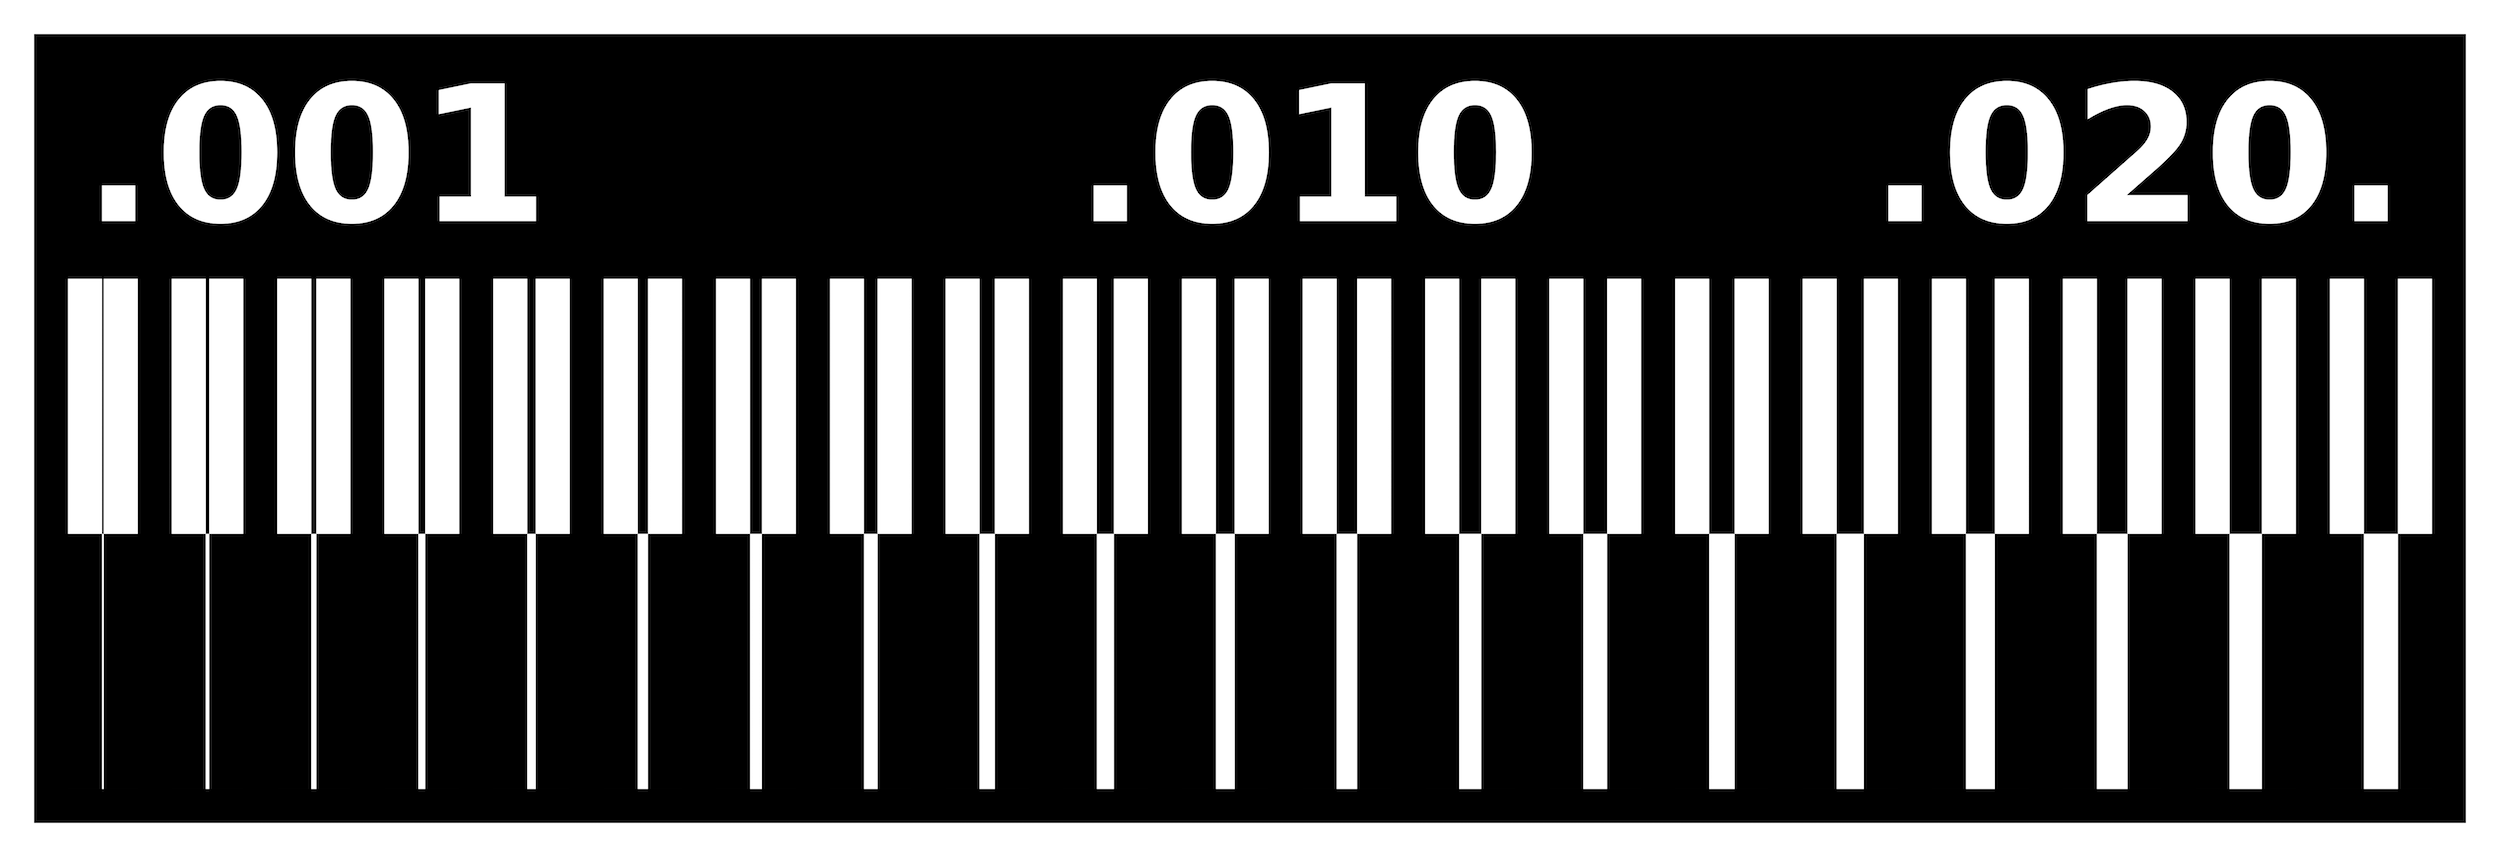 static/img/04_line_test_pattern.png